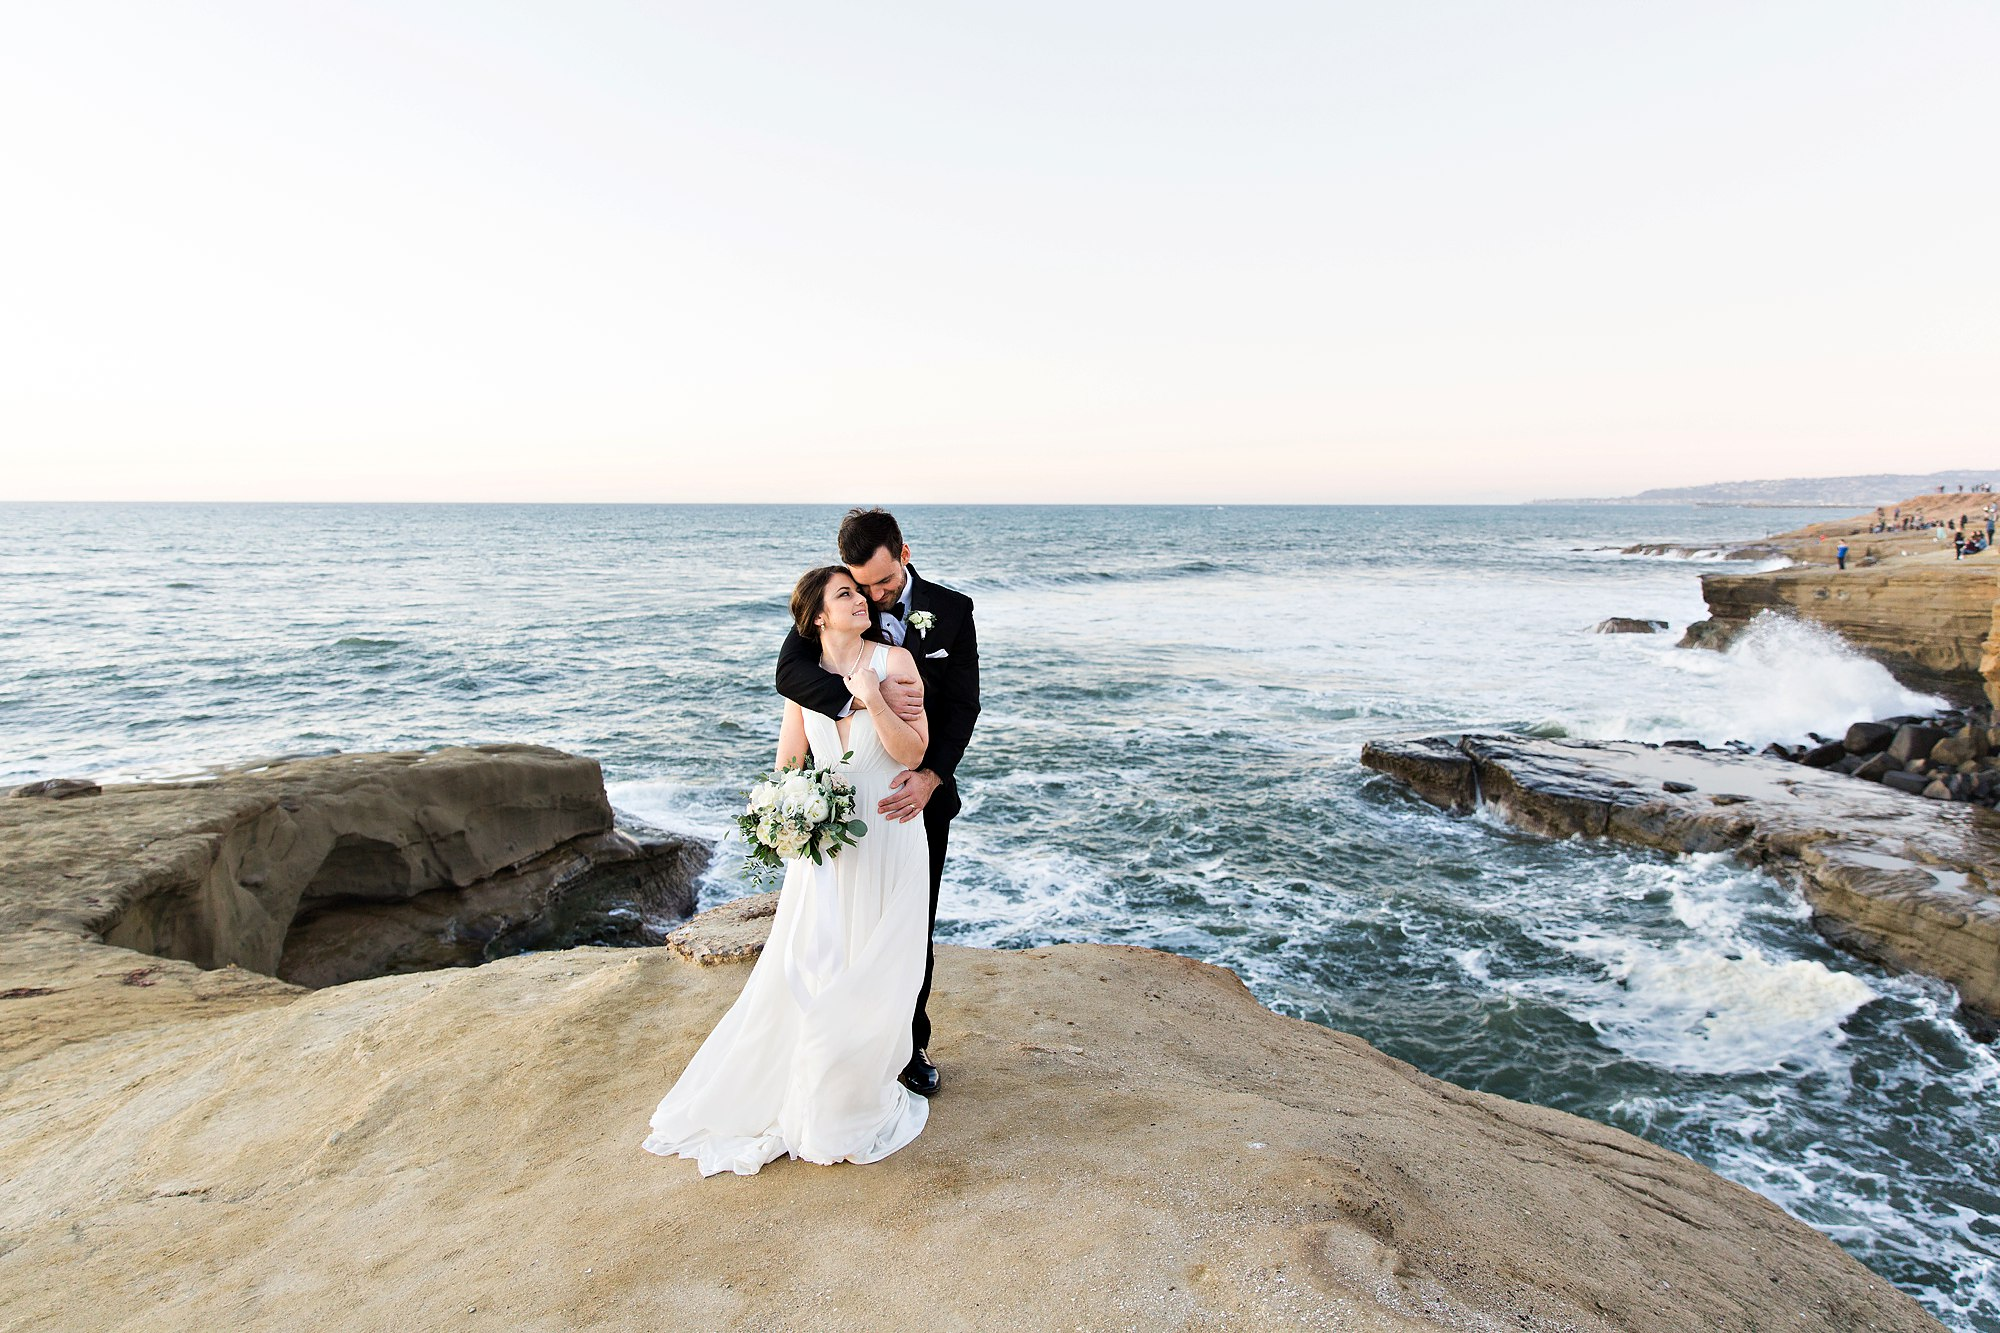 San Diego Wedding Photographer - Evelyn Molina_0002.jpg